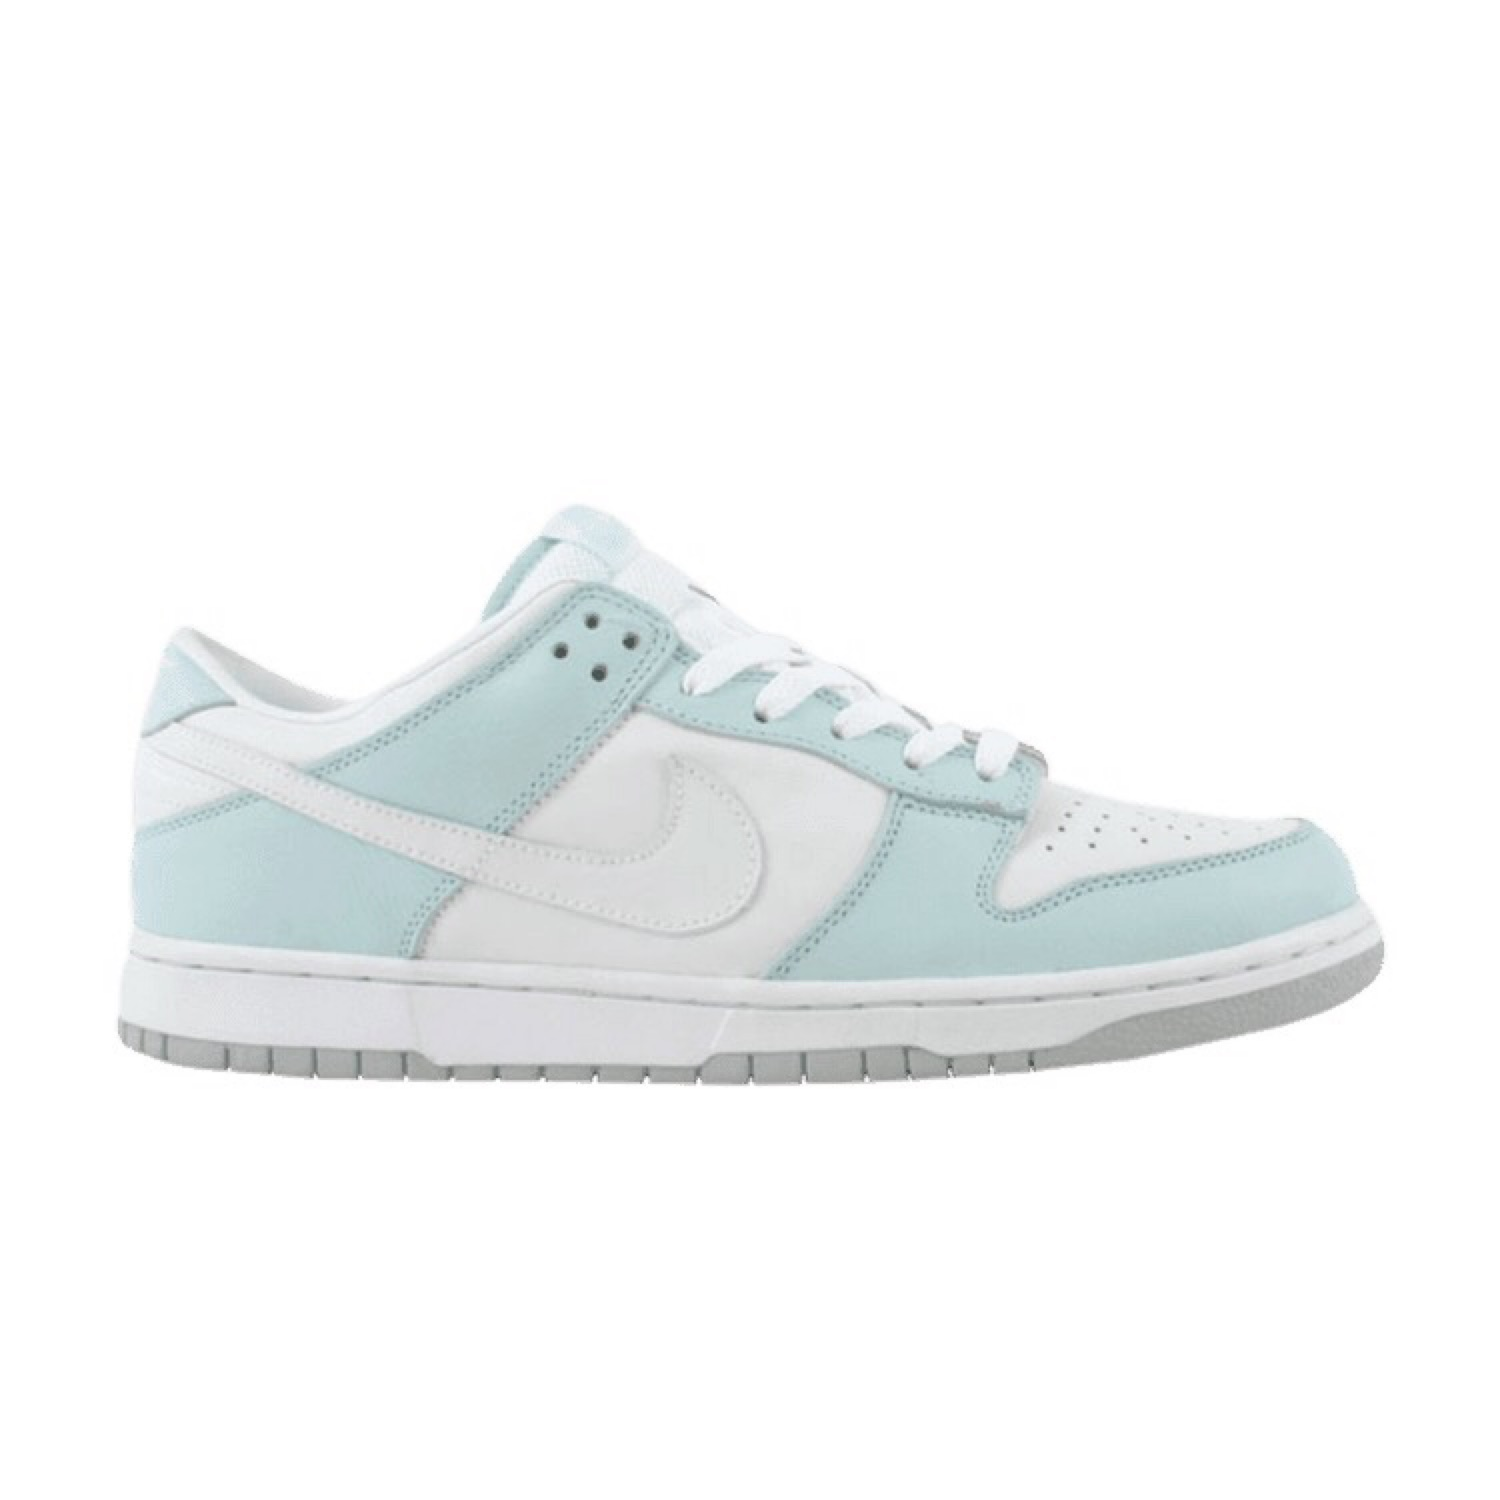 brand new 4cb93 c9ef0 Nike Dunk Low Pro Wmns